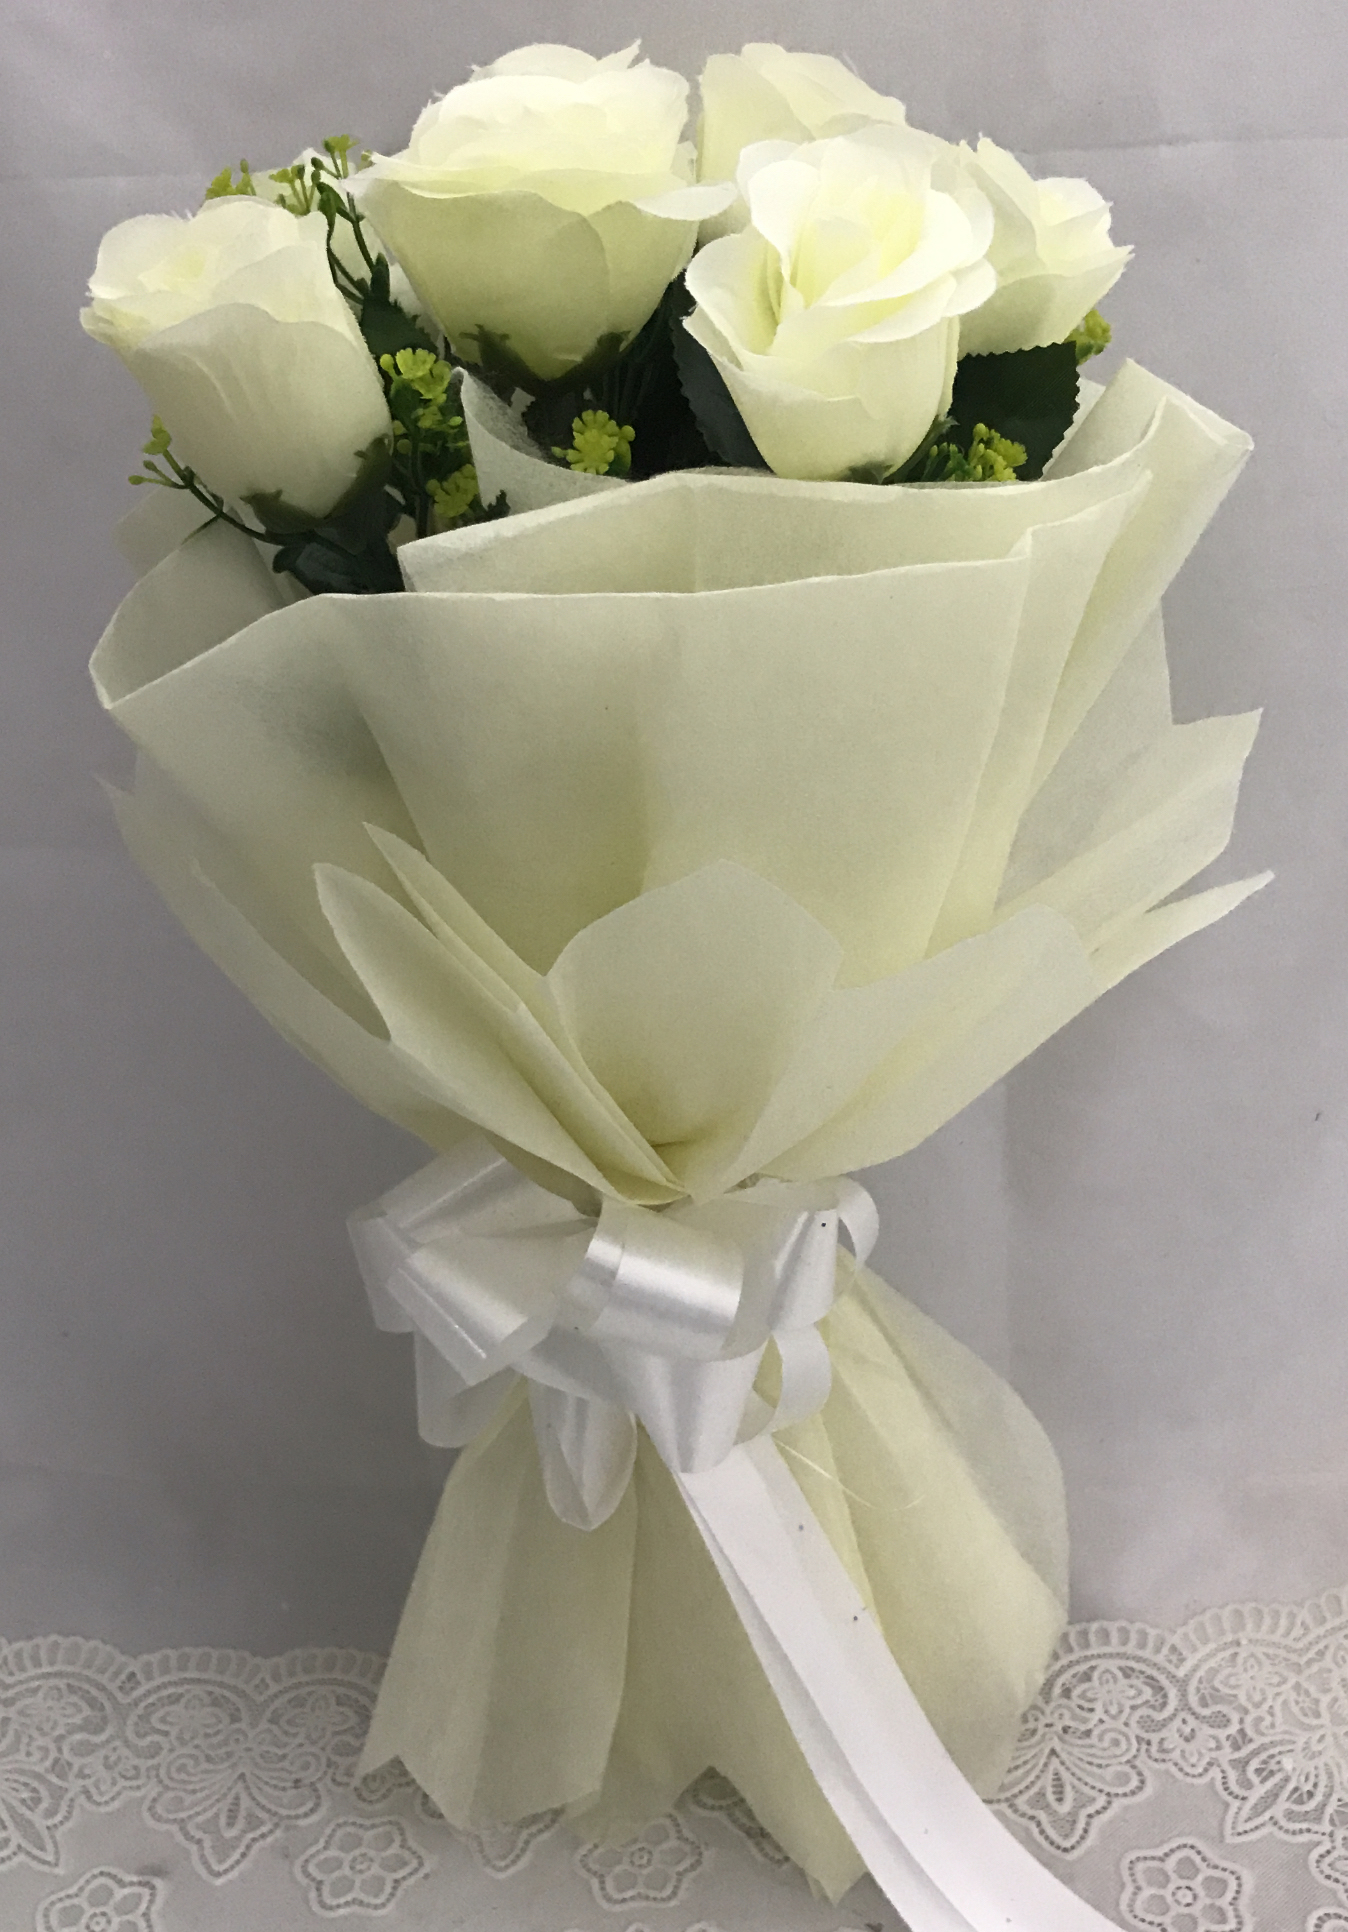 Cake Delivery Yusuf Sarai DelhiArtificial 8 White Roses Hand Bouquet (Only For Delhi)